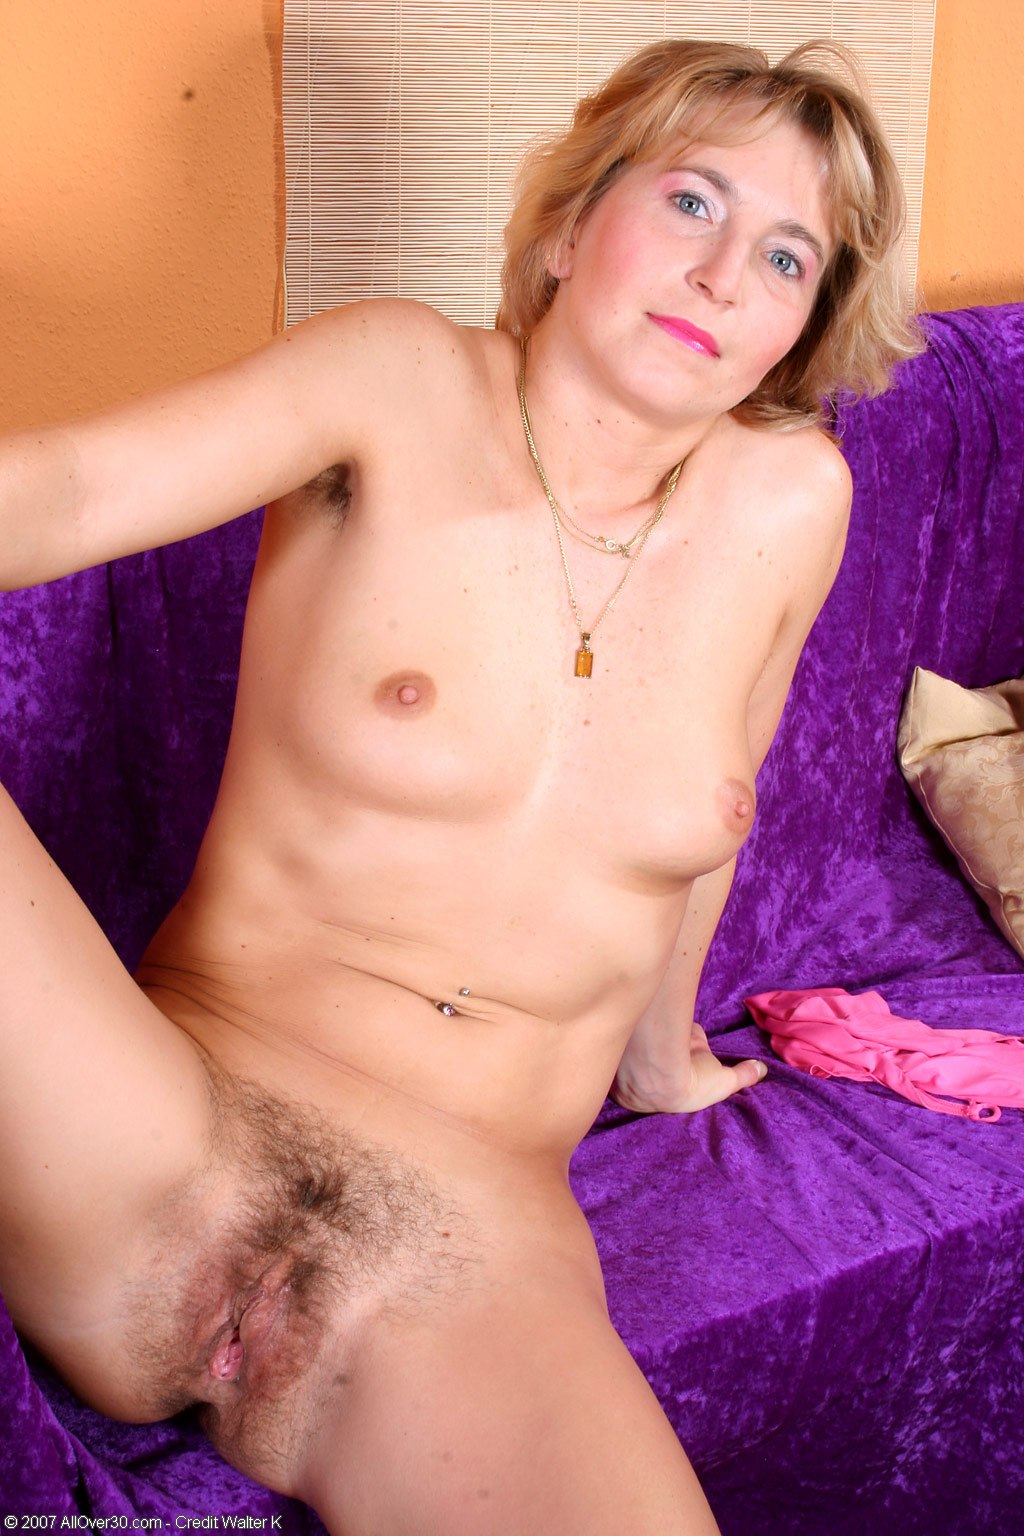 mature ladies of years old naked